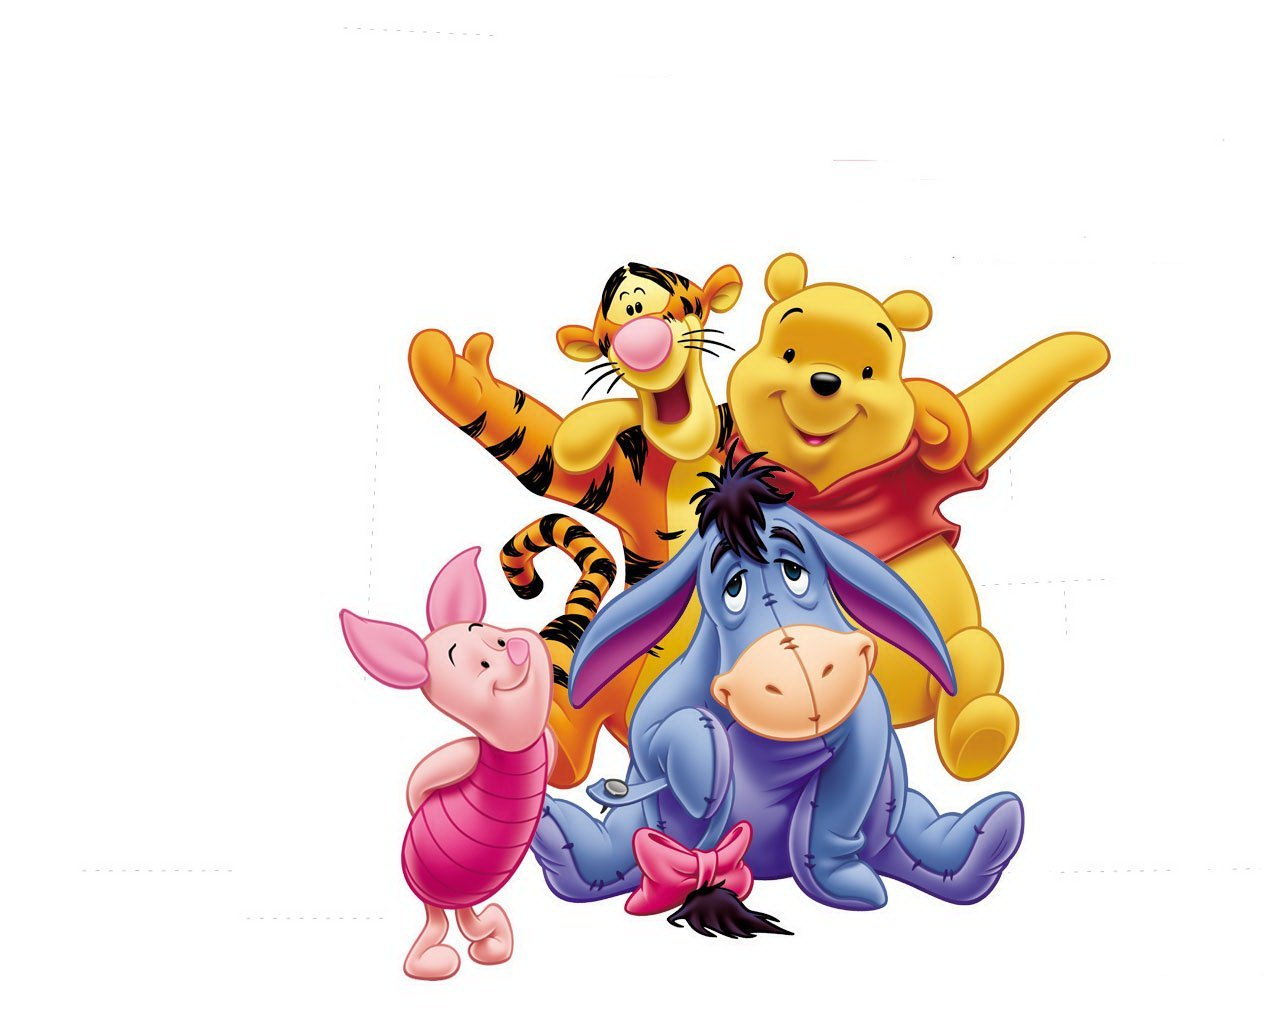 Imagenes de Winnie Pooh wallpaper: March  1280x1024